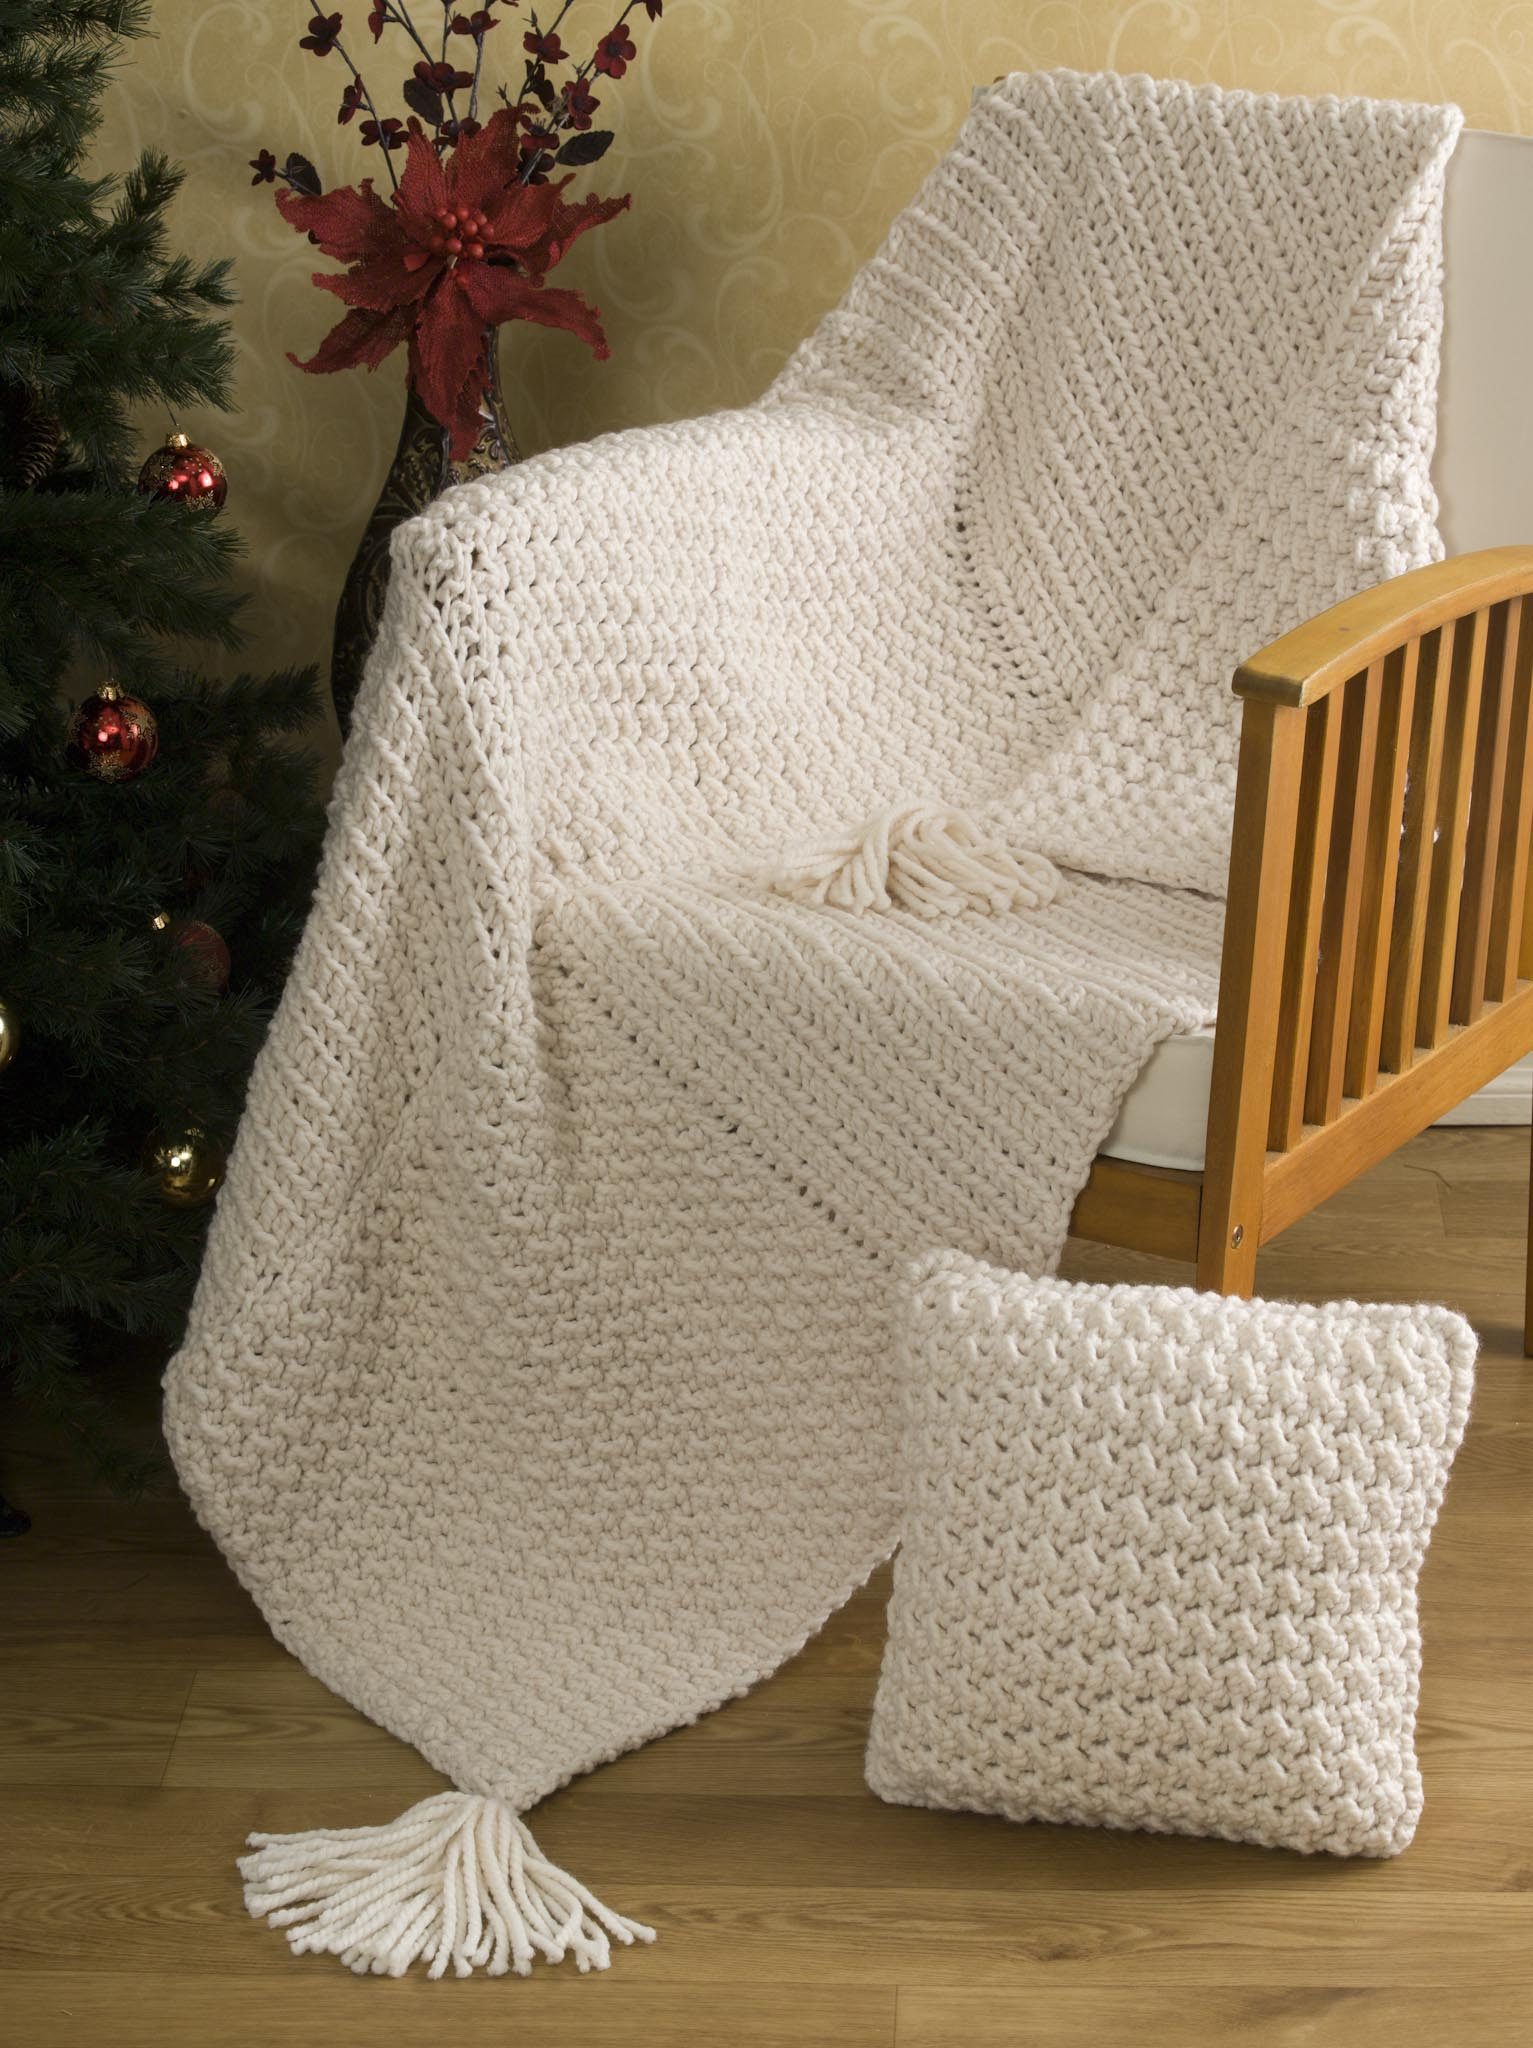 Minty Stripes Baby Blanket And Aran Squared Throw Hooked On